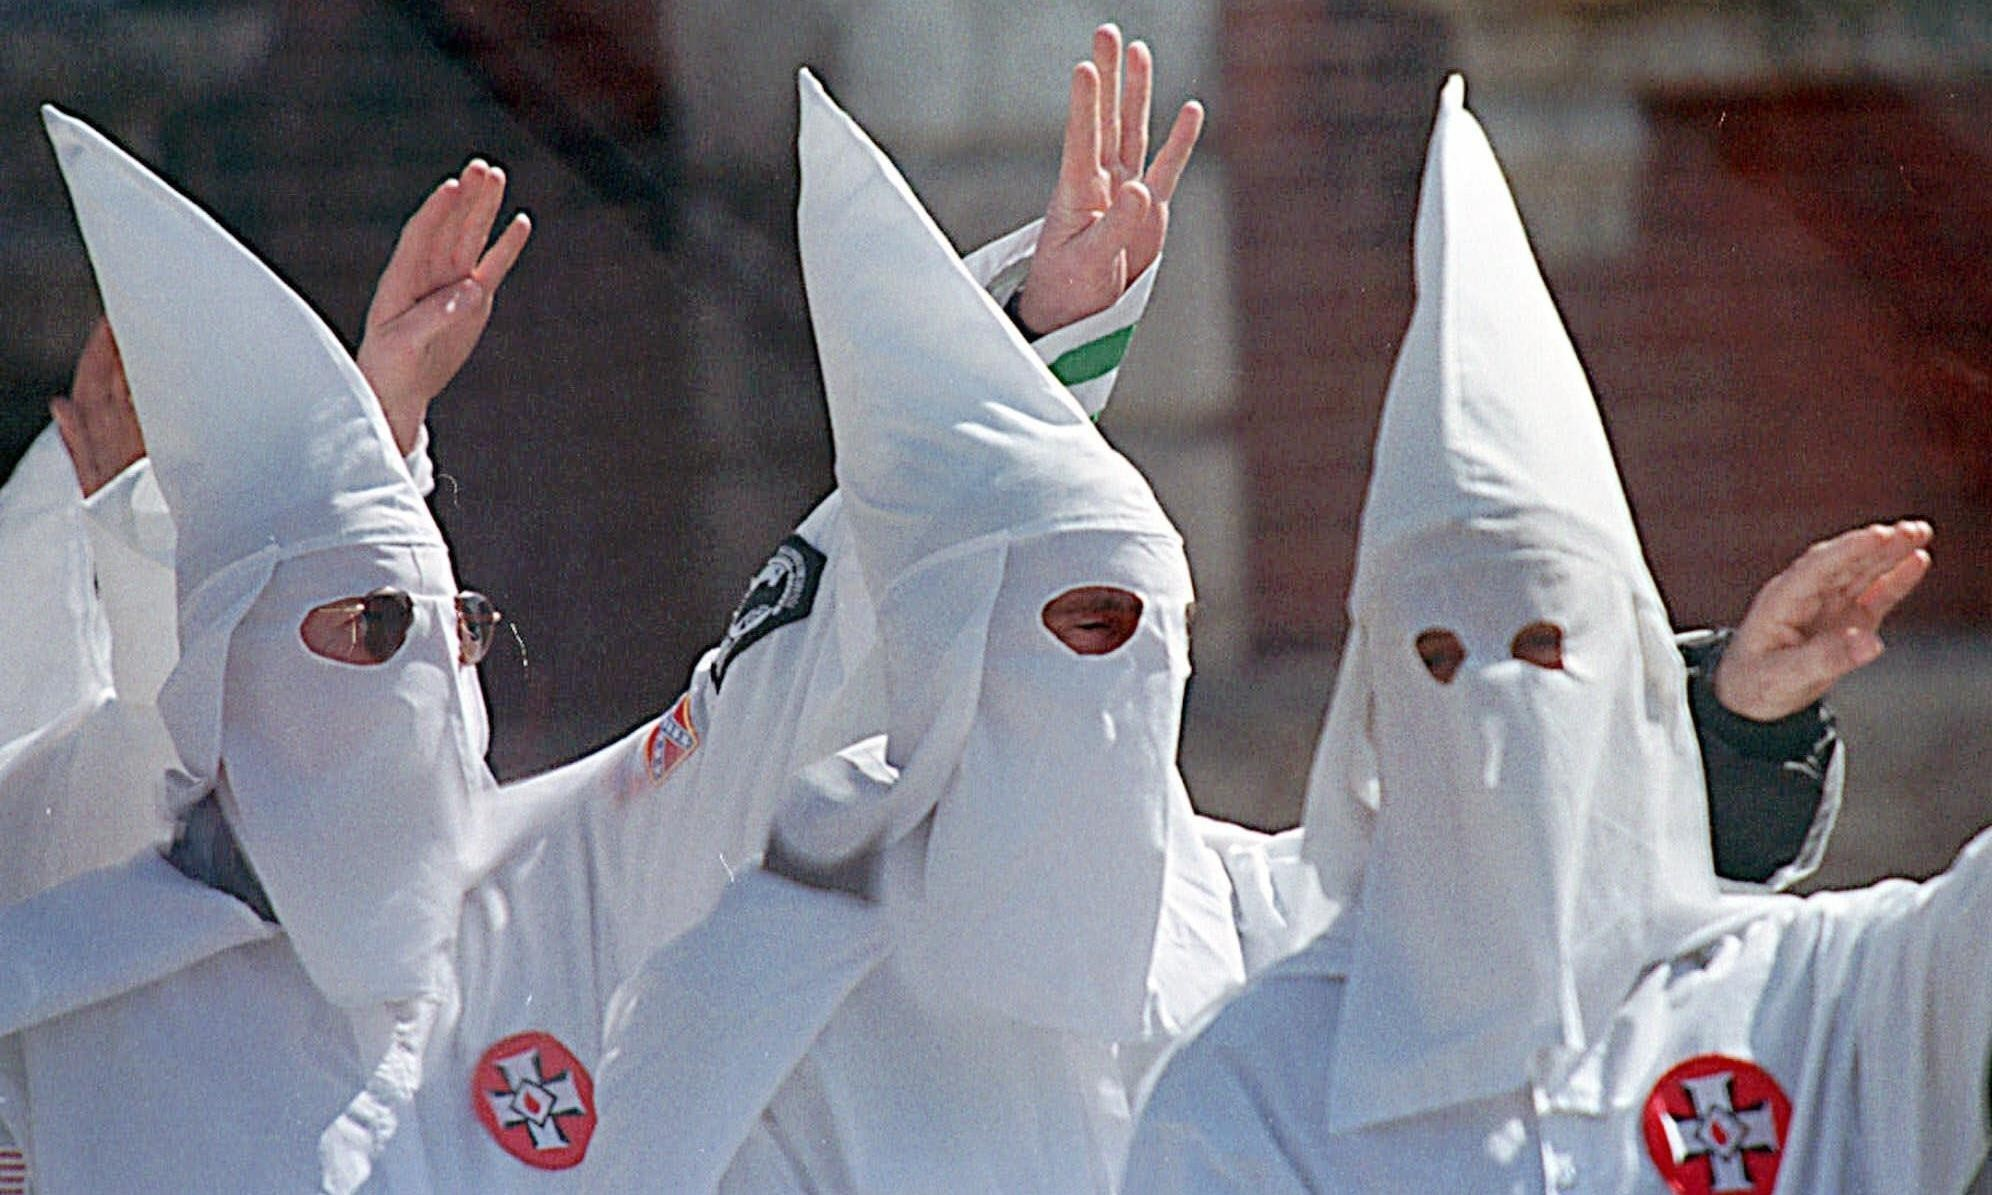 Anonymous plans to reveal names of about 1,000 Ku Klux Klan members